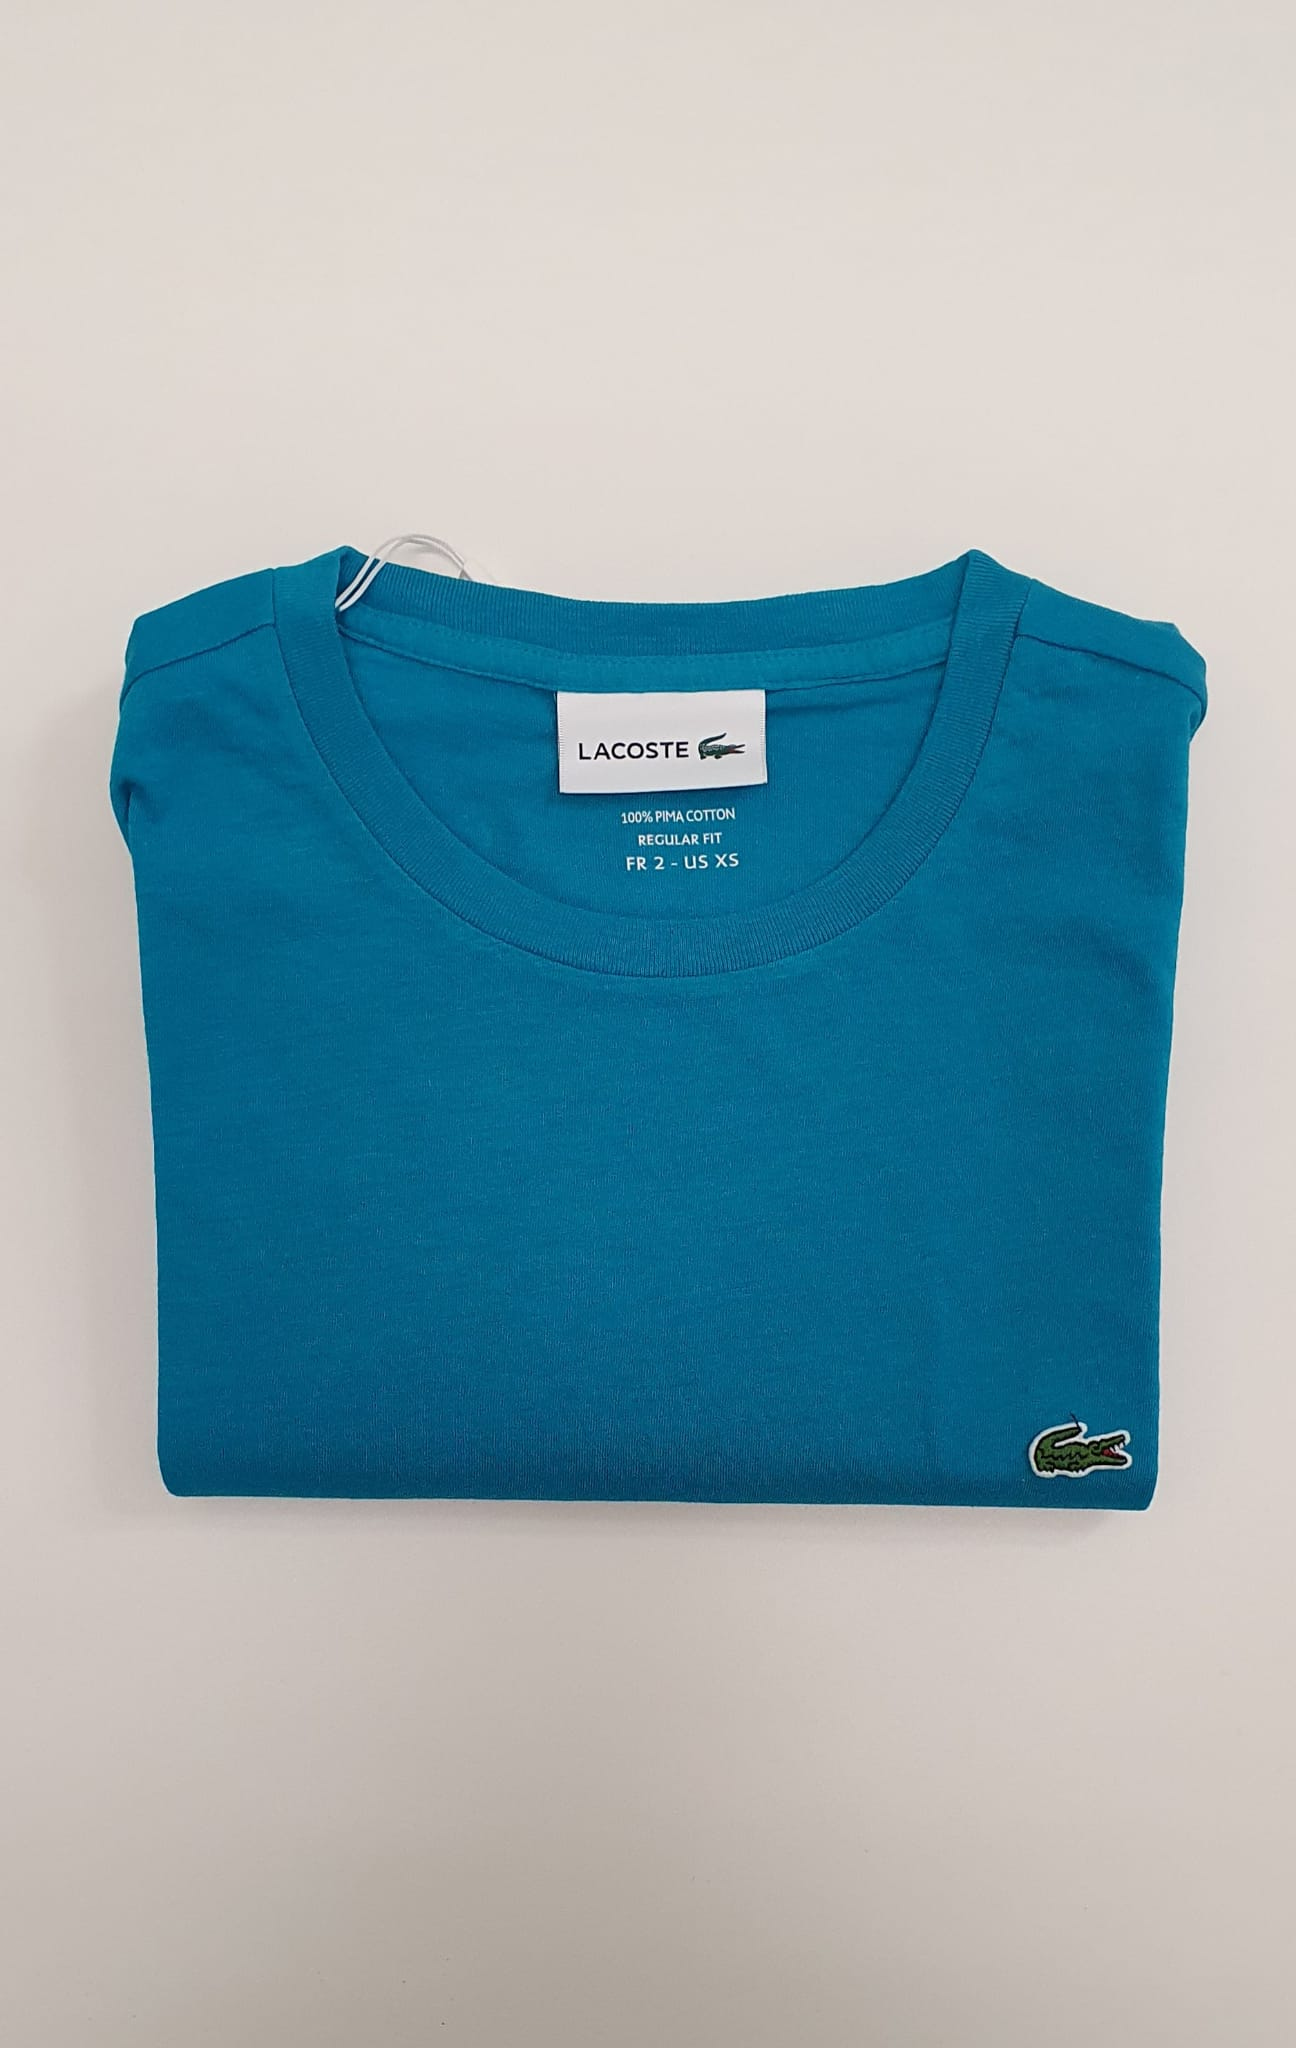 T-Shirt Lacoste uomo TH6709 a Girocollo in Jersy Turchese